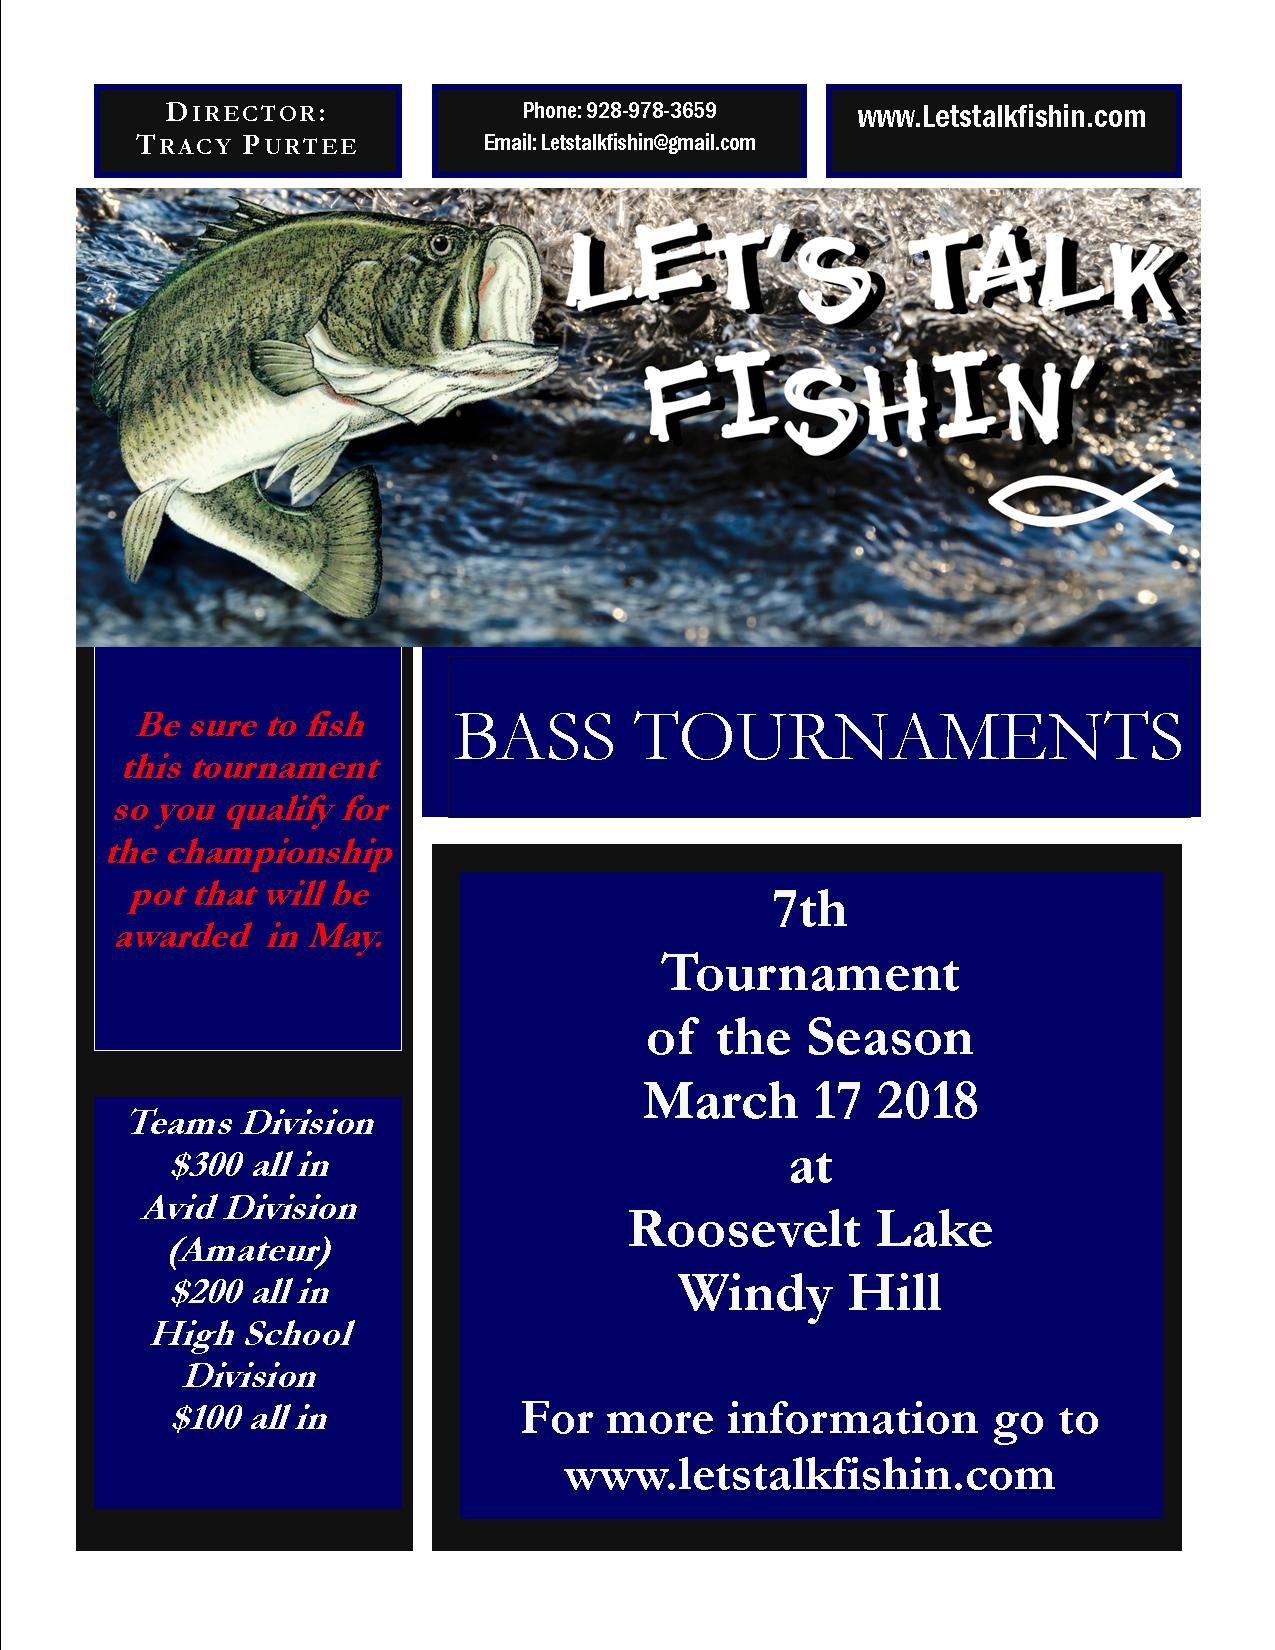 Click image for larger version  Name:7th Tournament.jpg Views:2188 Size:283.6 KB ID:96826